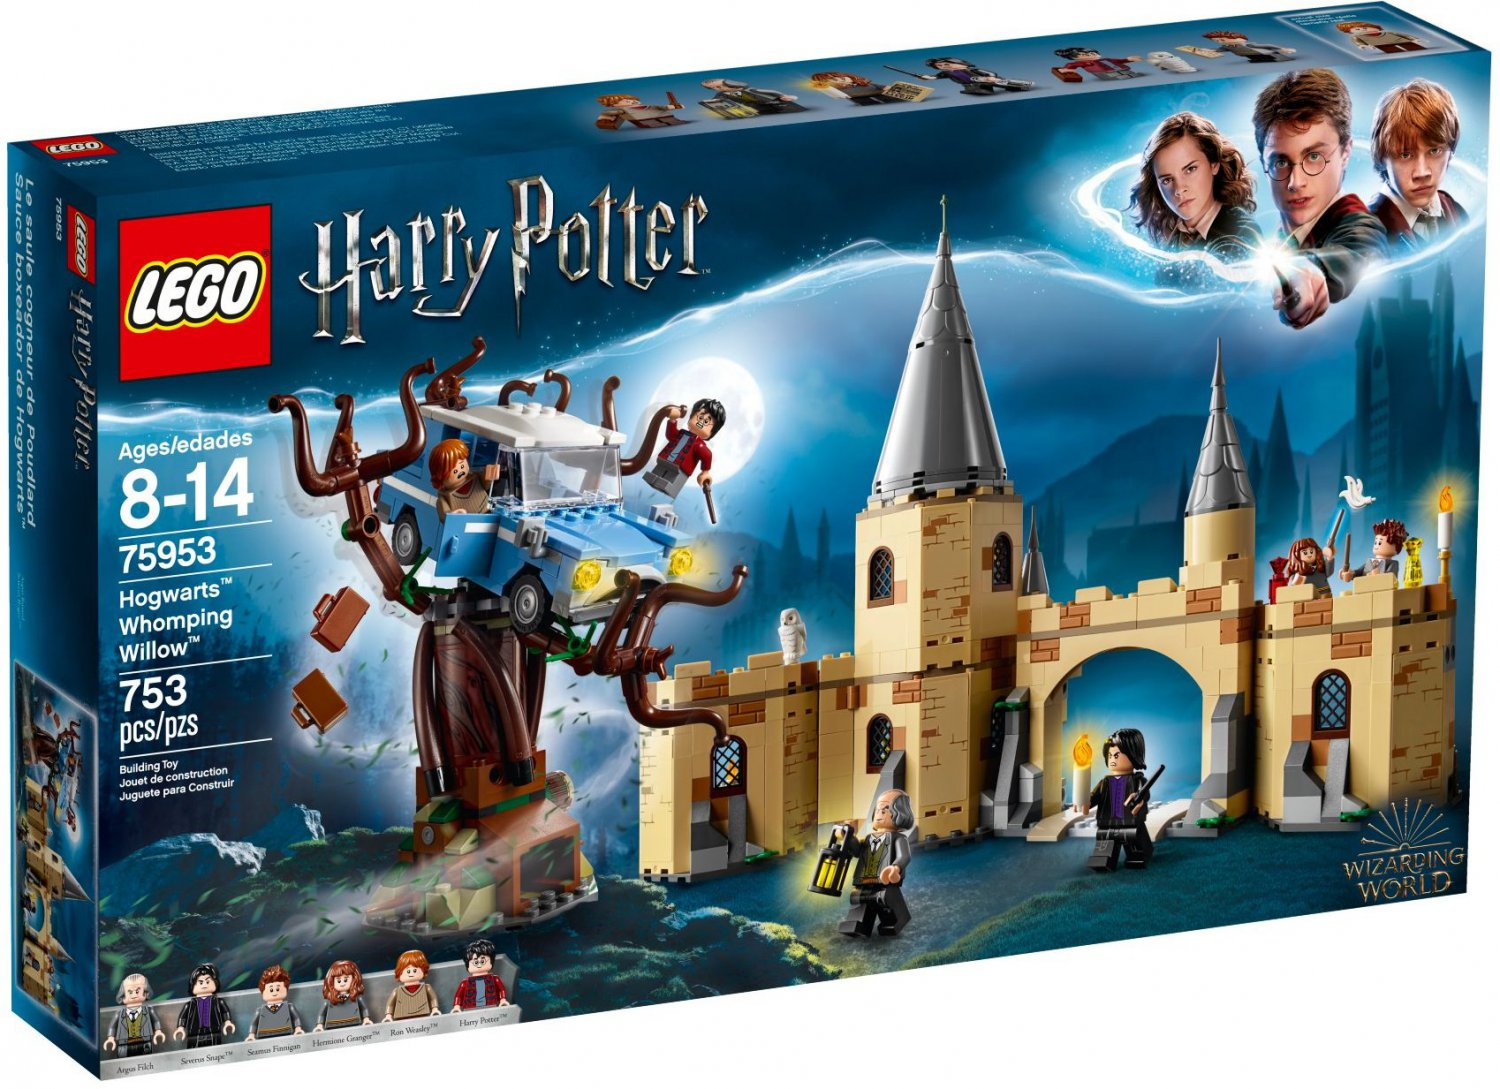 2018 Lego Harry Potter:Hogwarts Whomping Willow 75953